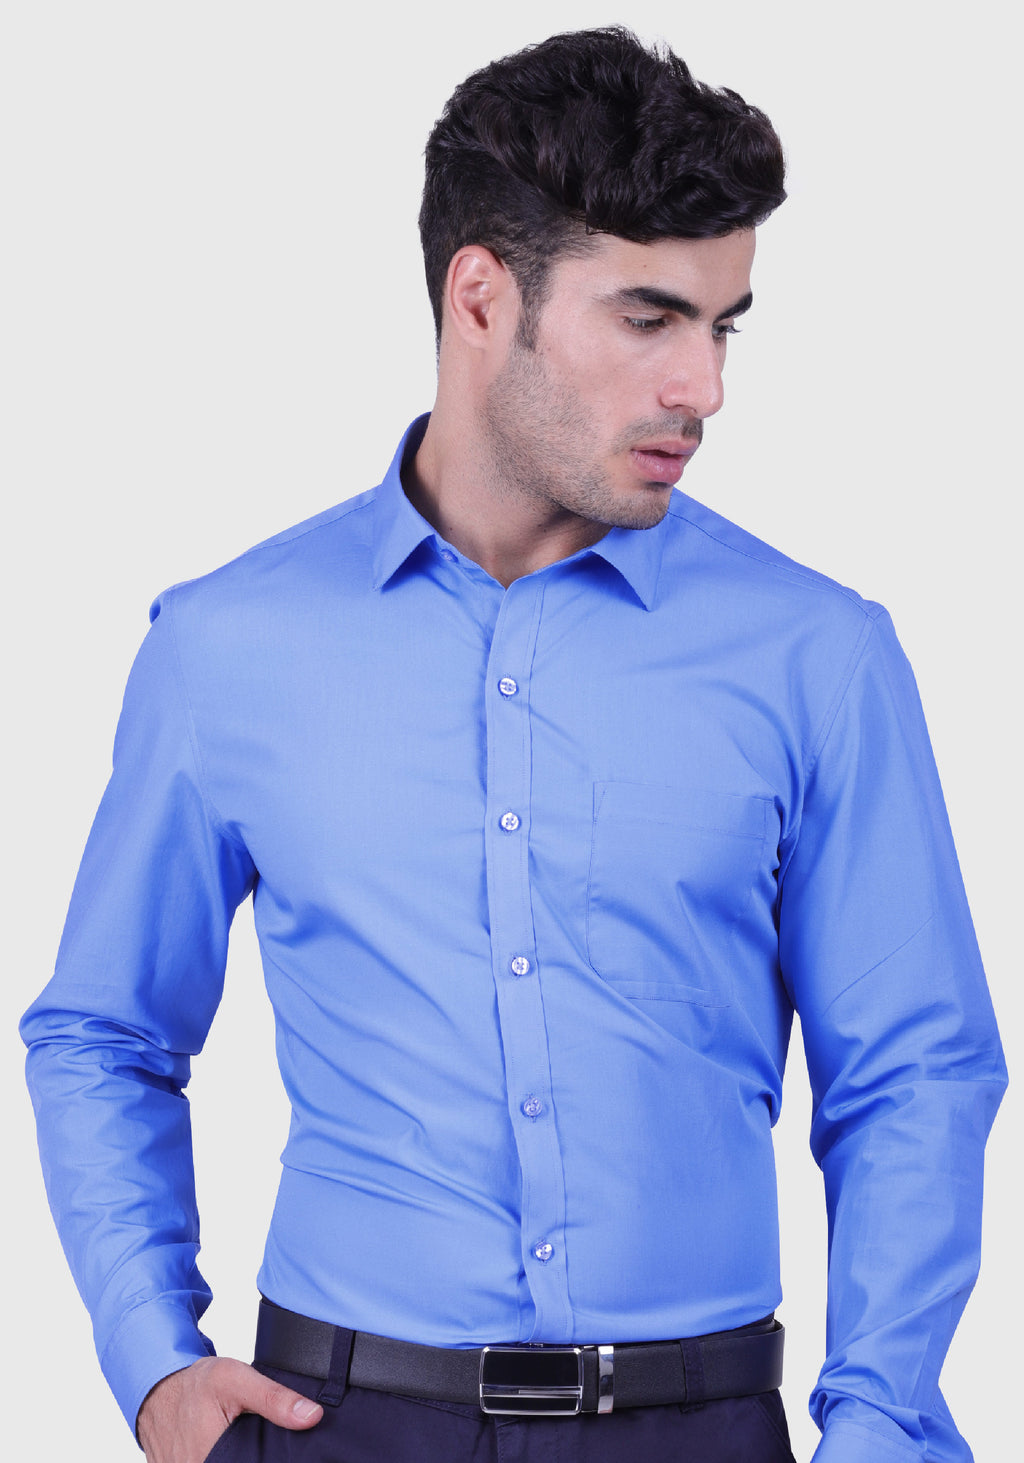 Cornflower Blue Shirt (Comfortable Slim Fit)